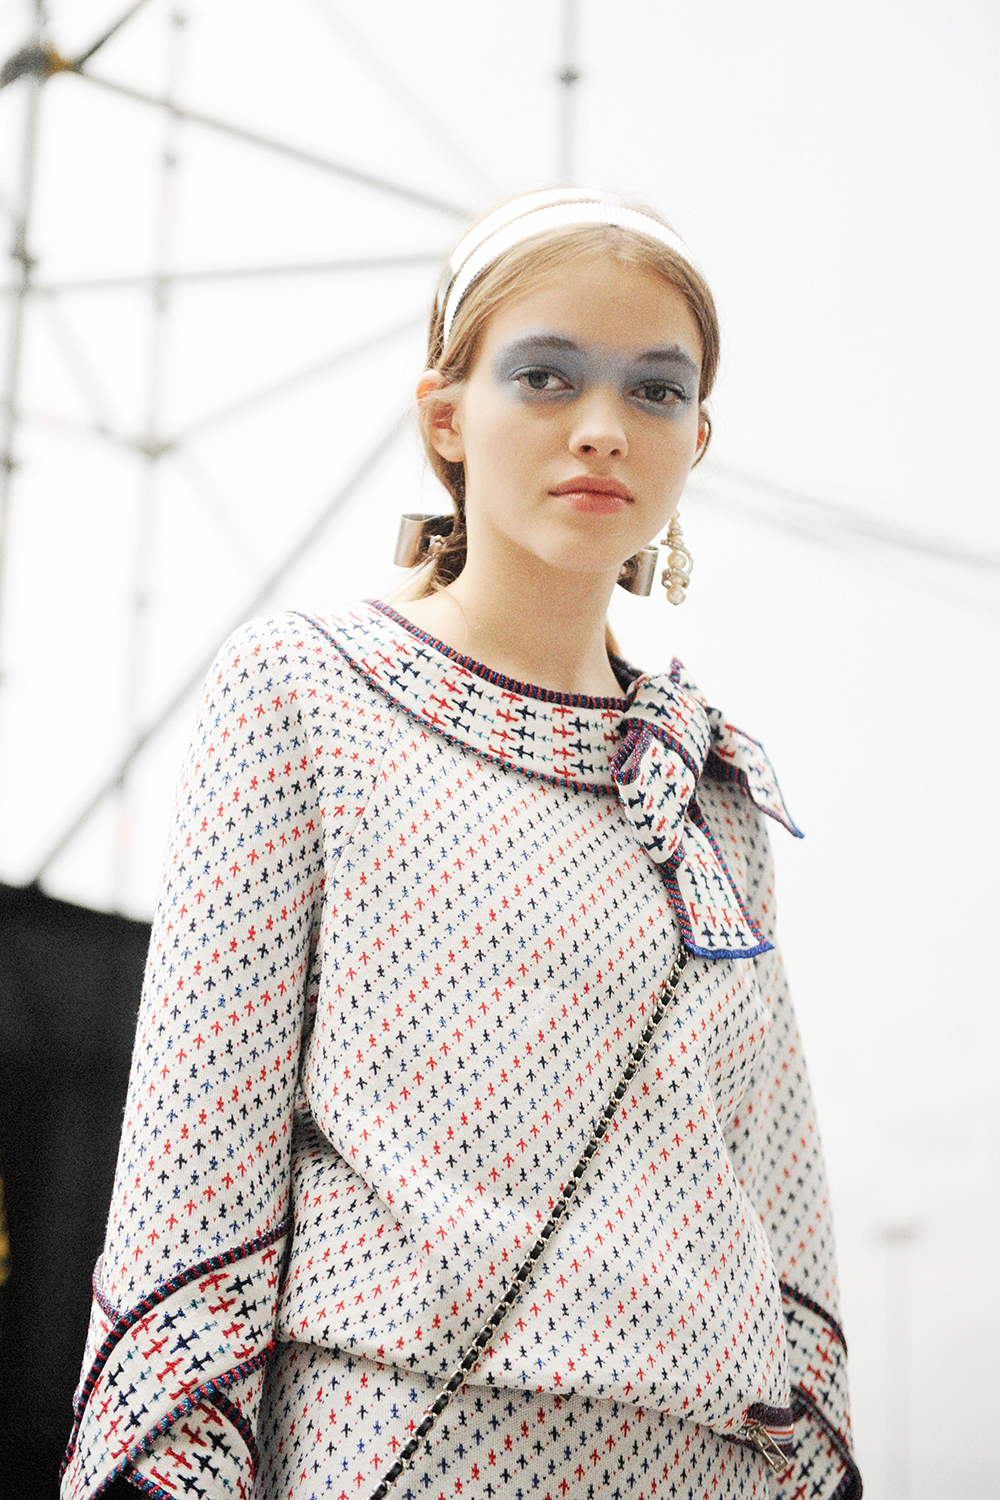 Backstage At Chanel Ss16 Show Chanel Airlines Crash